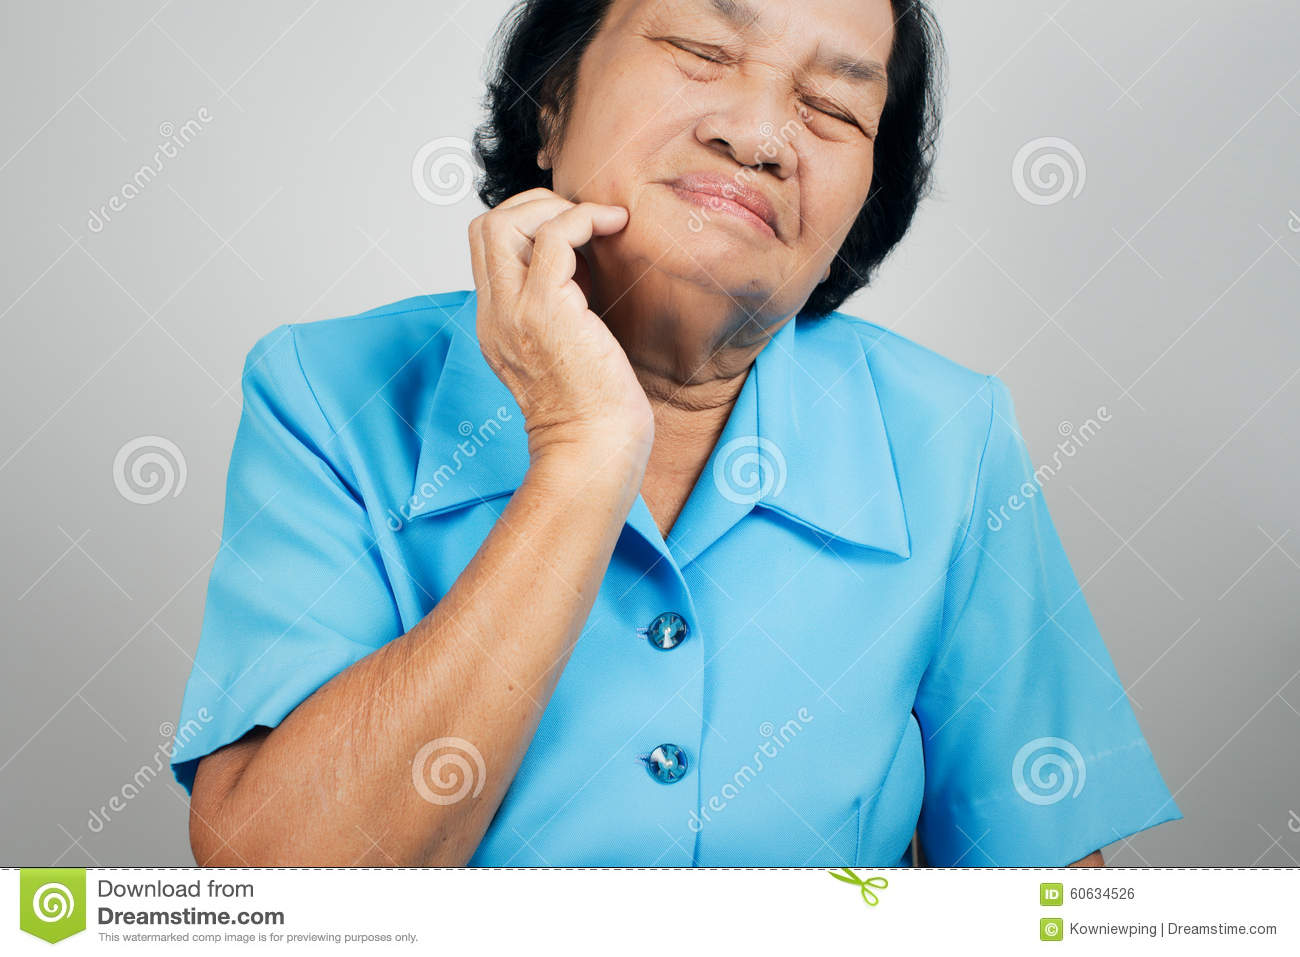 old woman scraching her labia stock photo - image of care, healthy